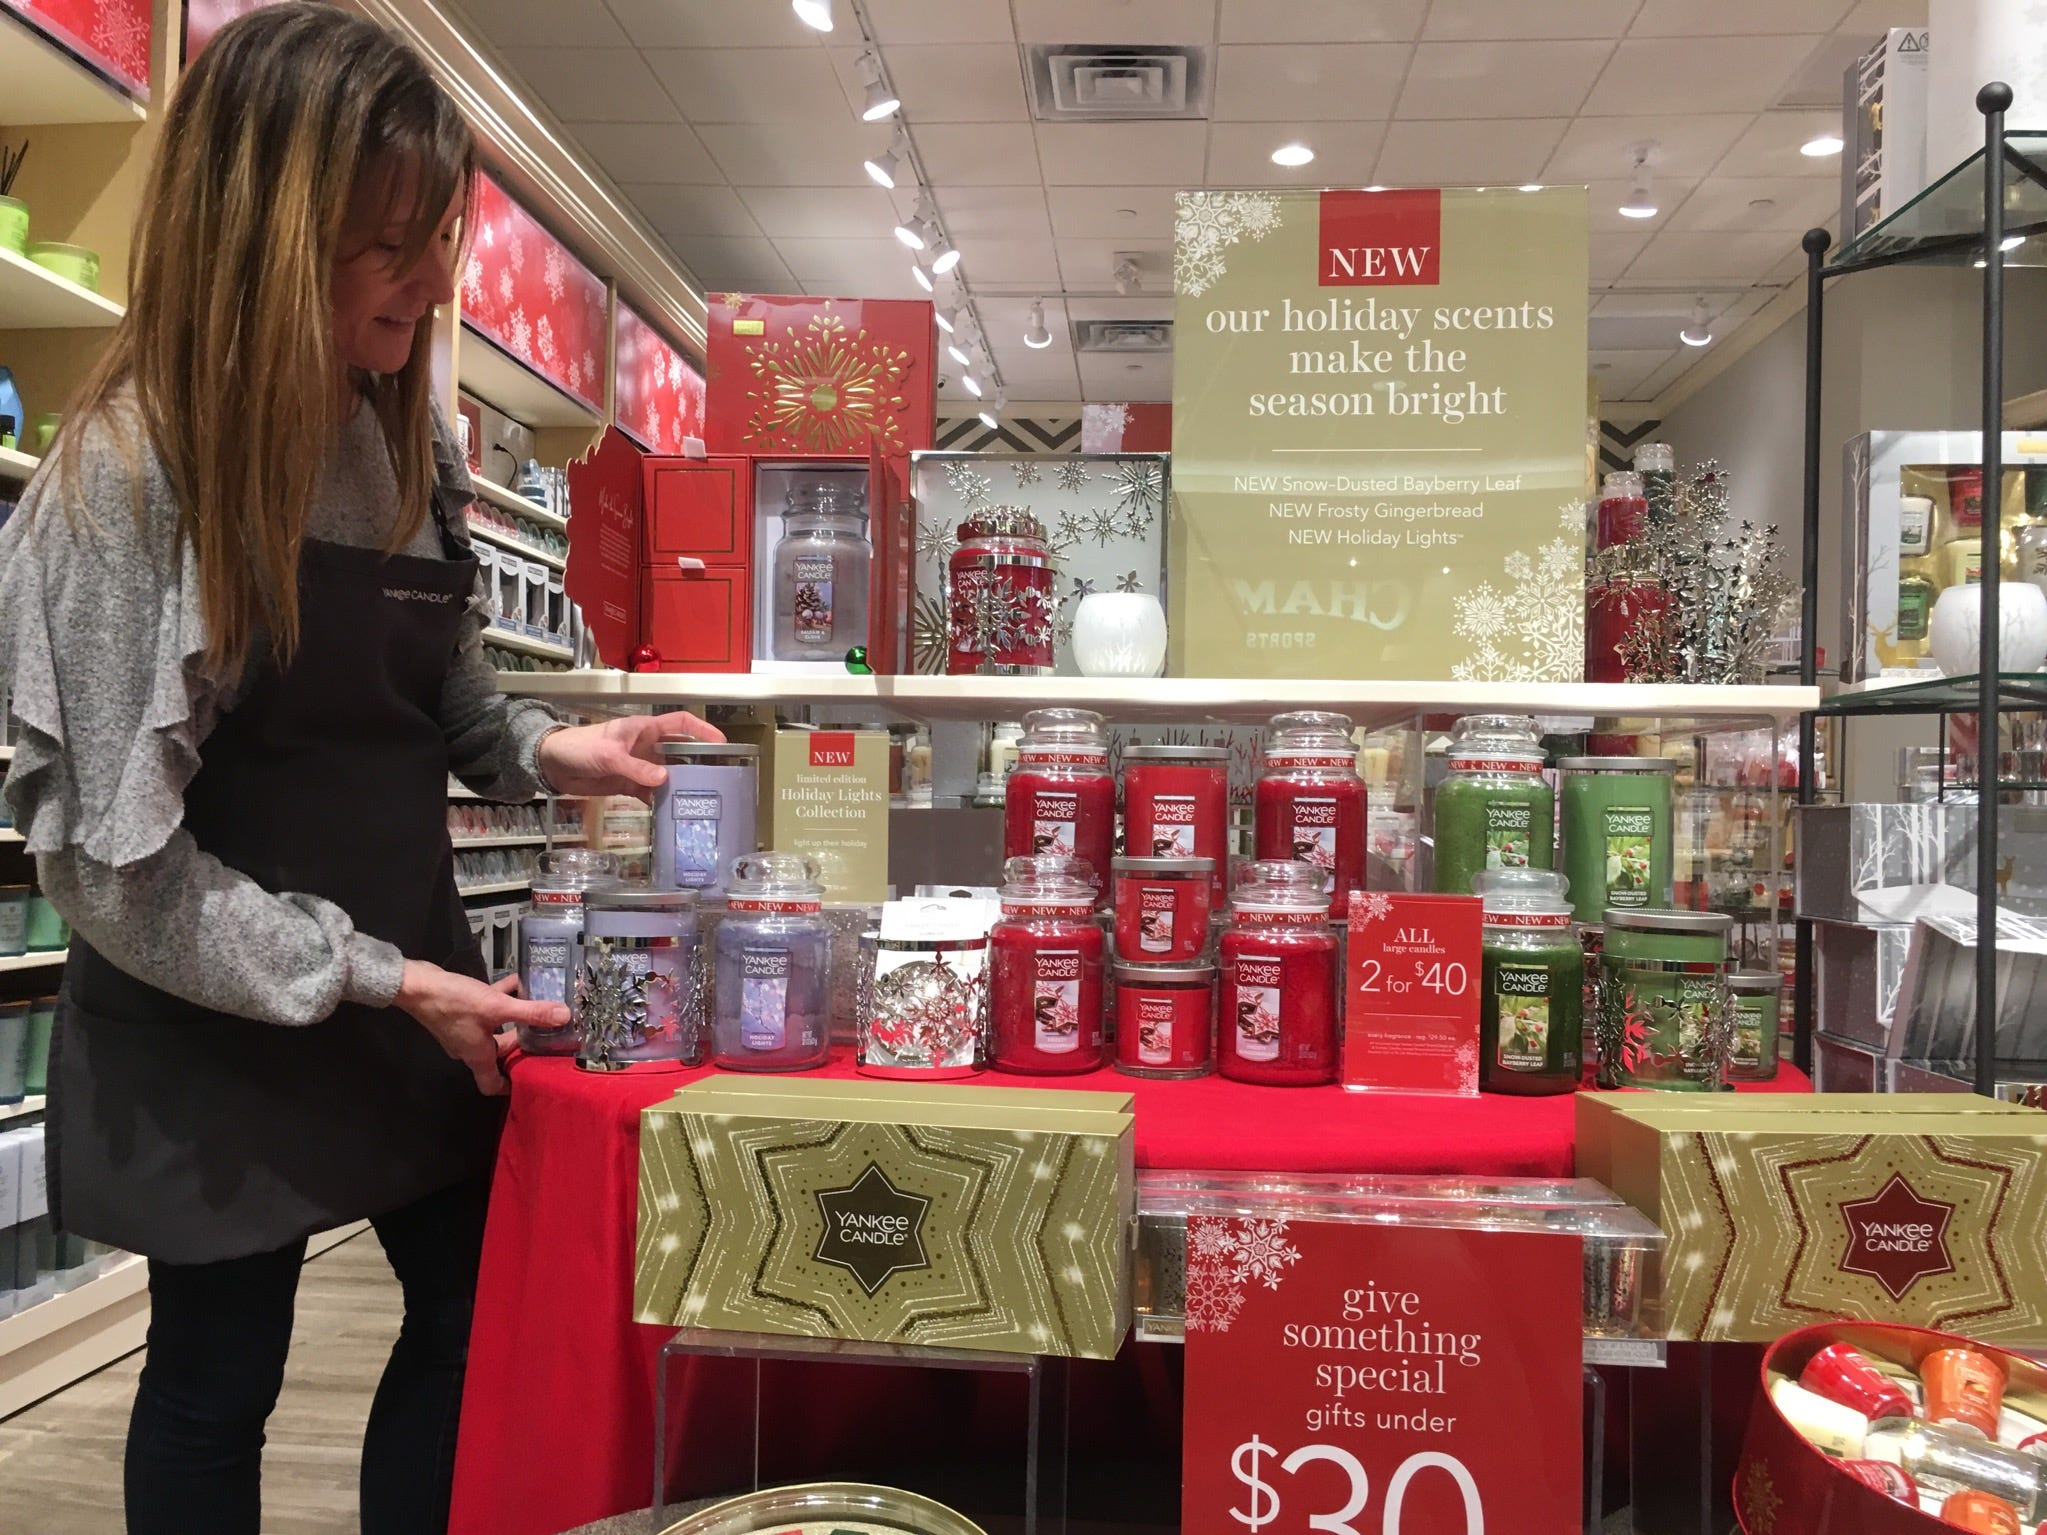 Yankee Candle is another one of the newer Governor's Square stores. Store manager Kristie Montjoy shows a Christmas candle display.